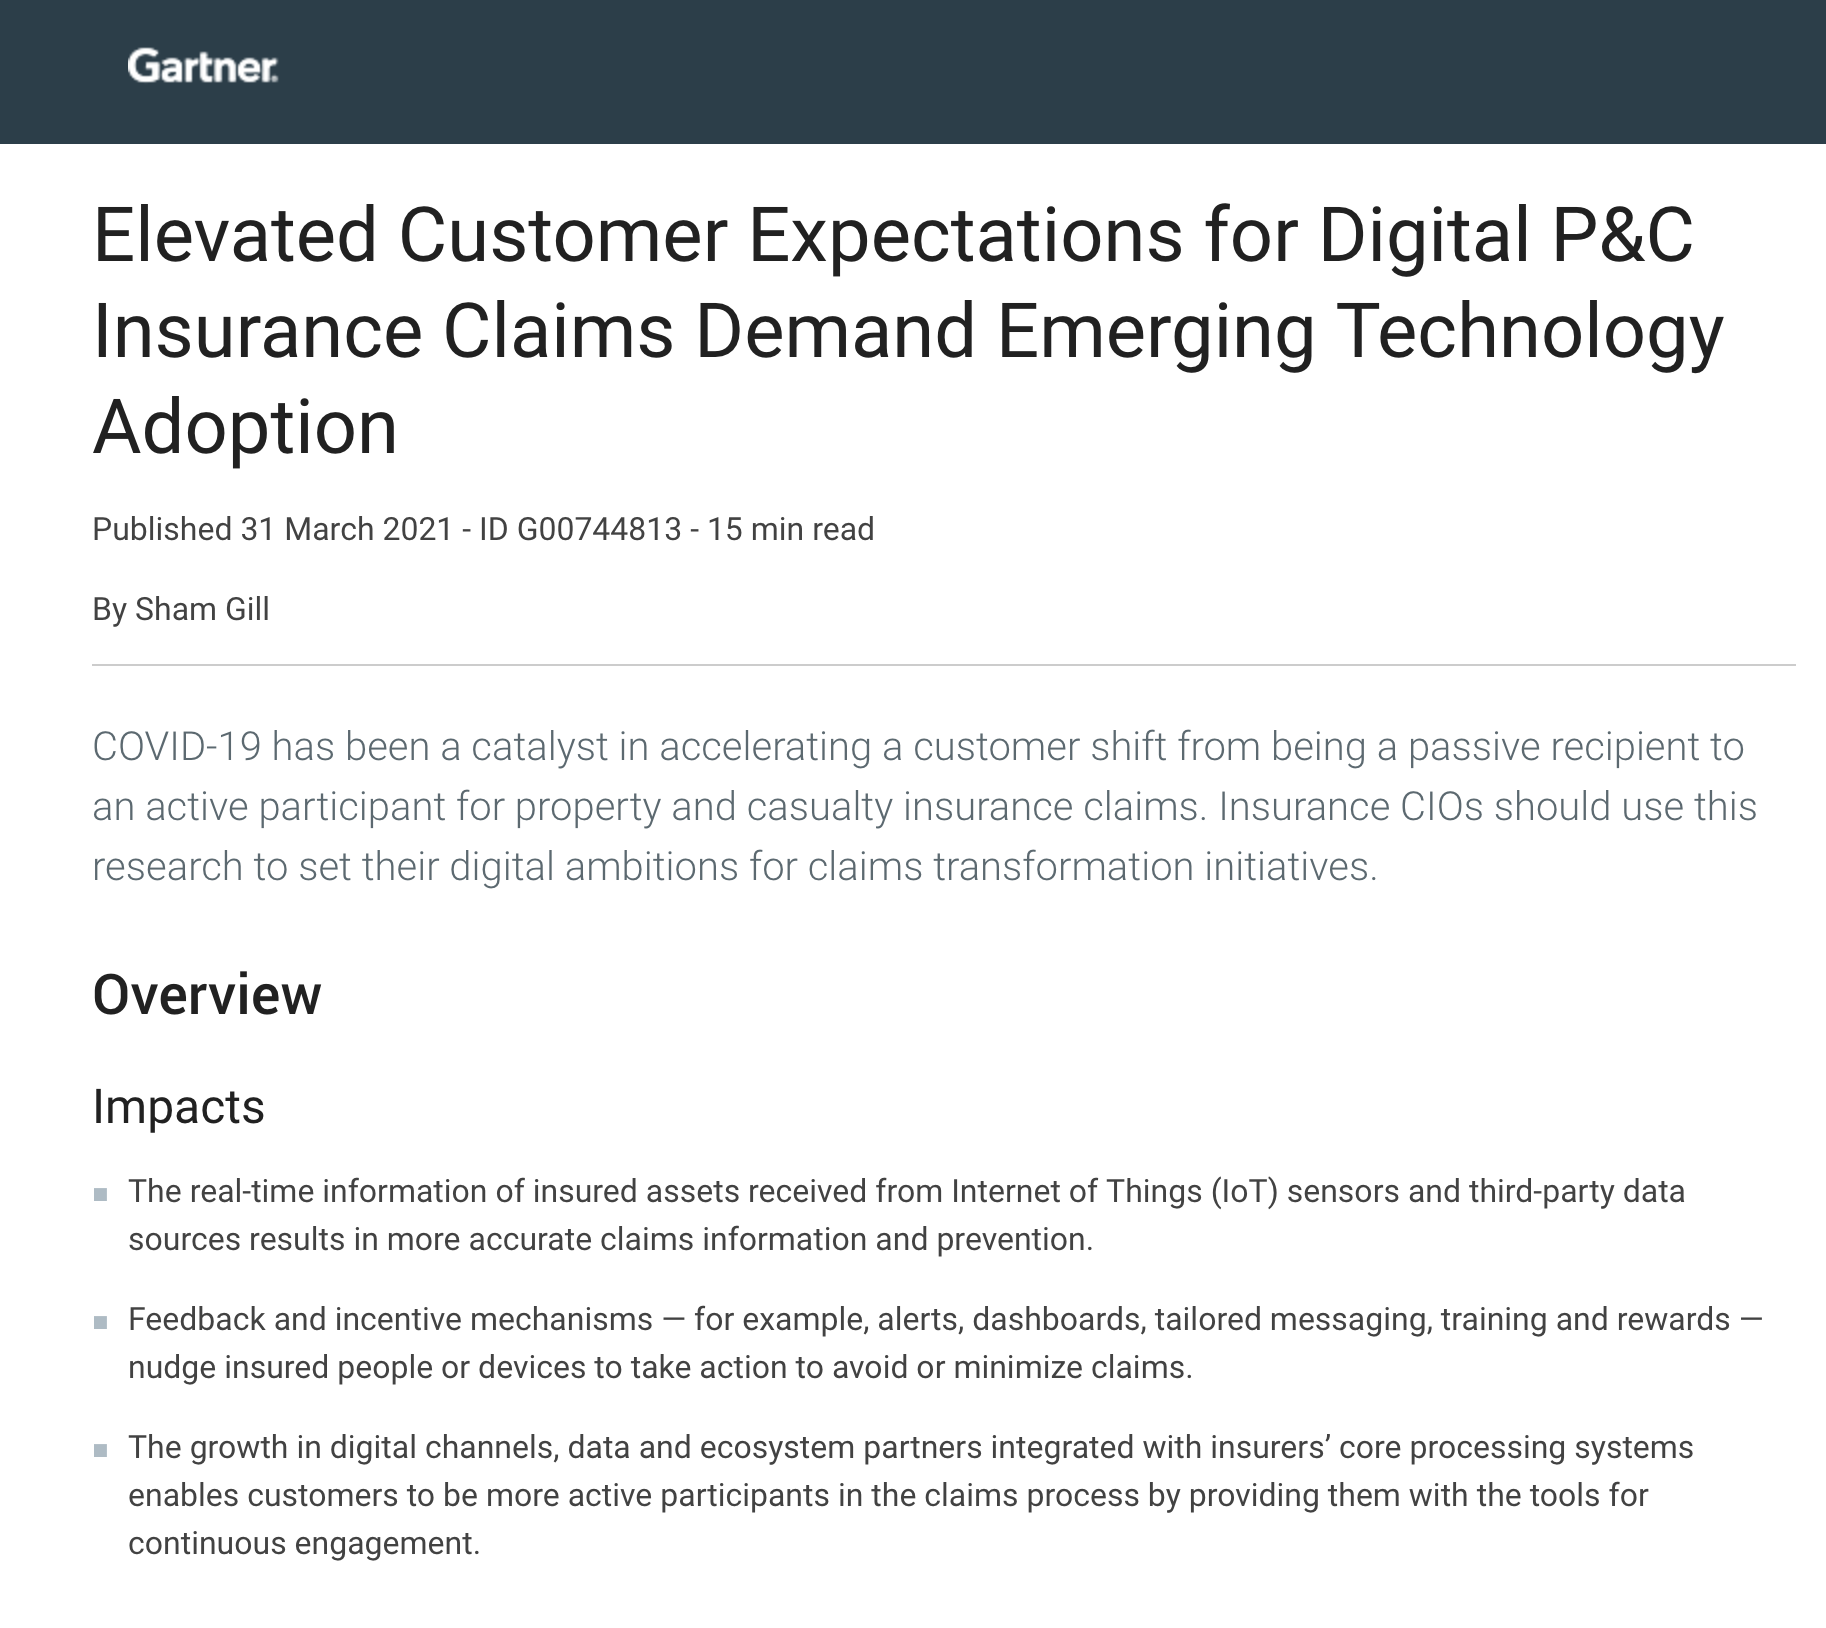 Gartner Report: Elevated Customer Expectations for Digital P&C Insurance Claims Demand Emerging Technology Adoption